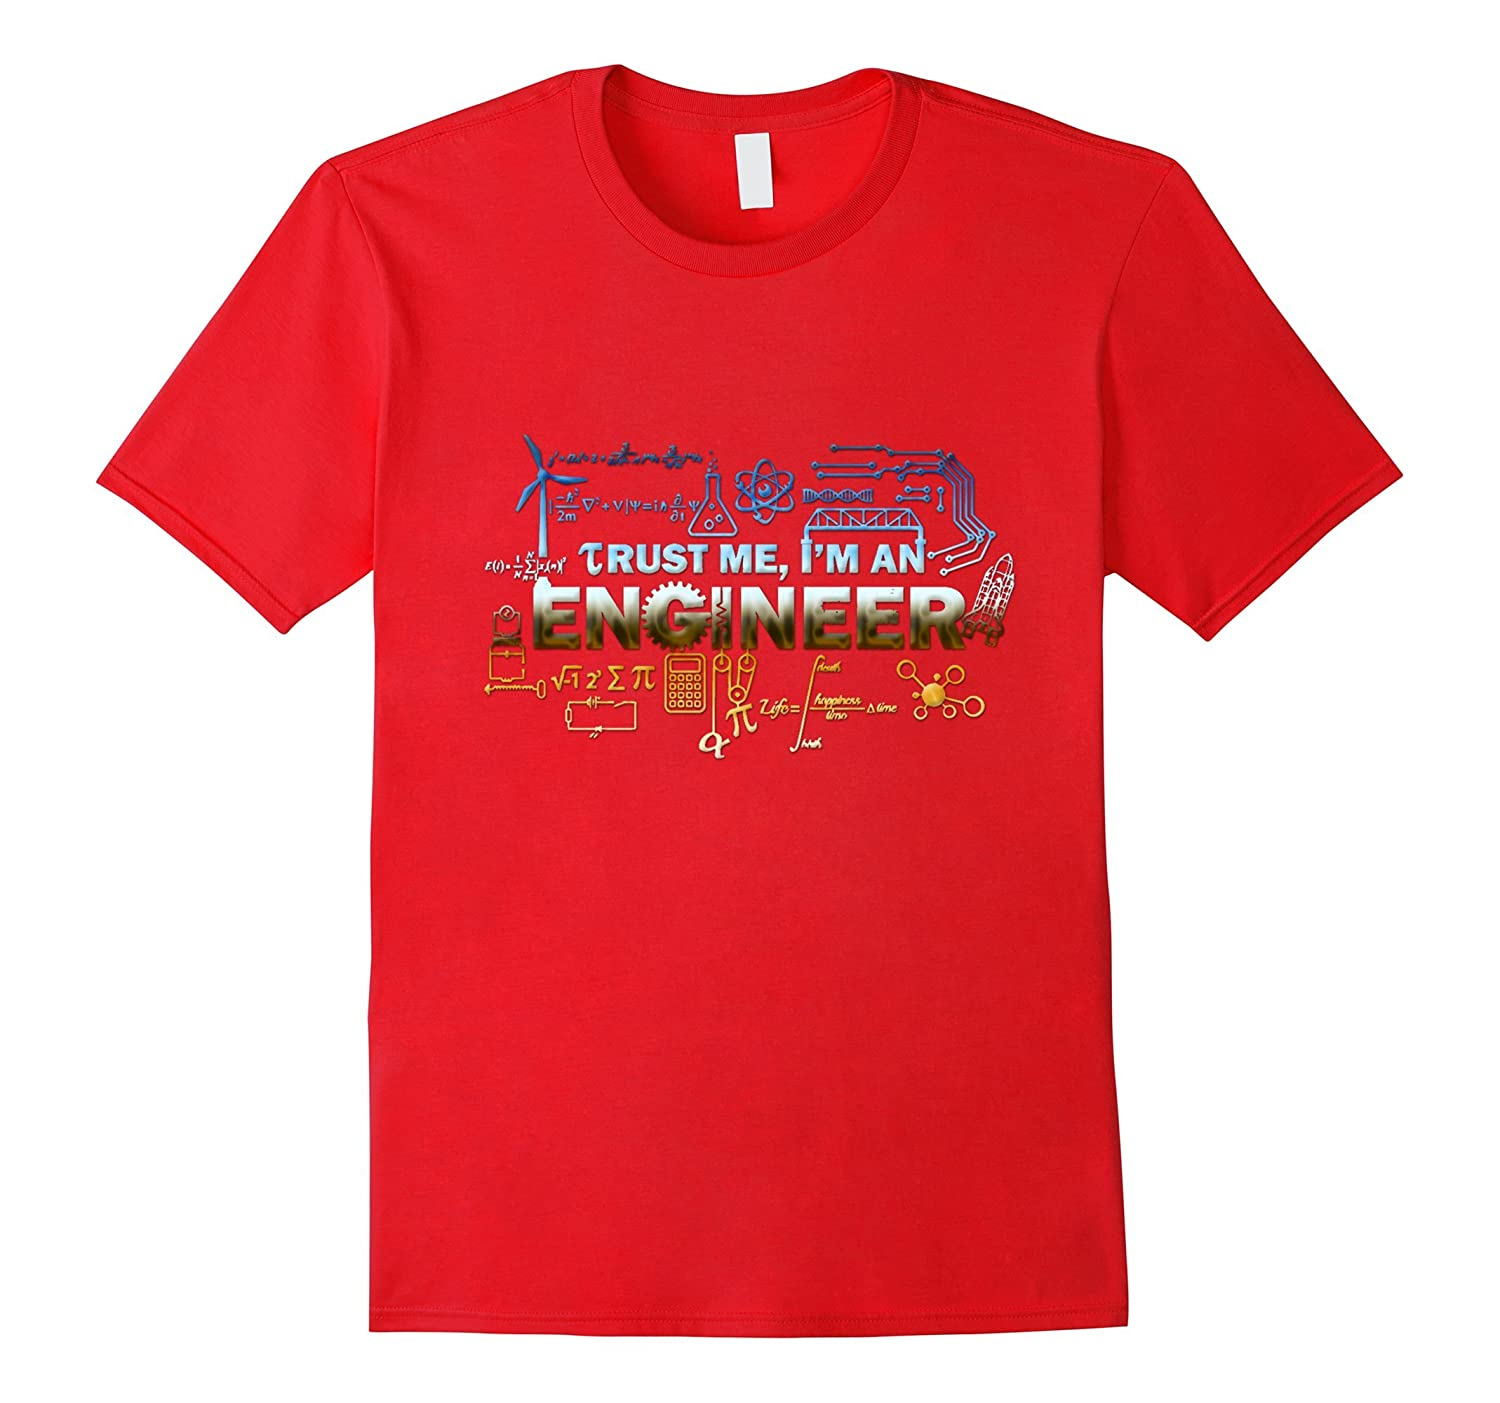 Trust Me, I'm An Engineer Shirt - Engineering Geek T-shirt-BN